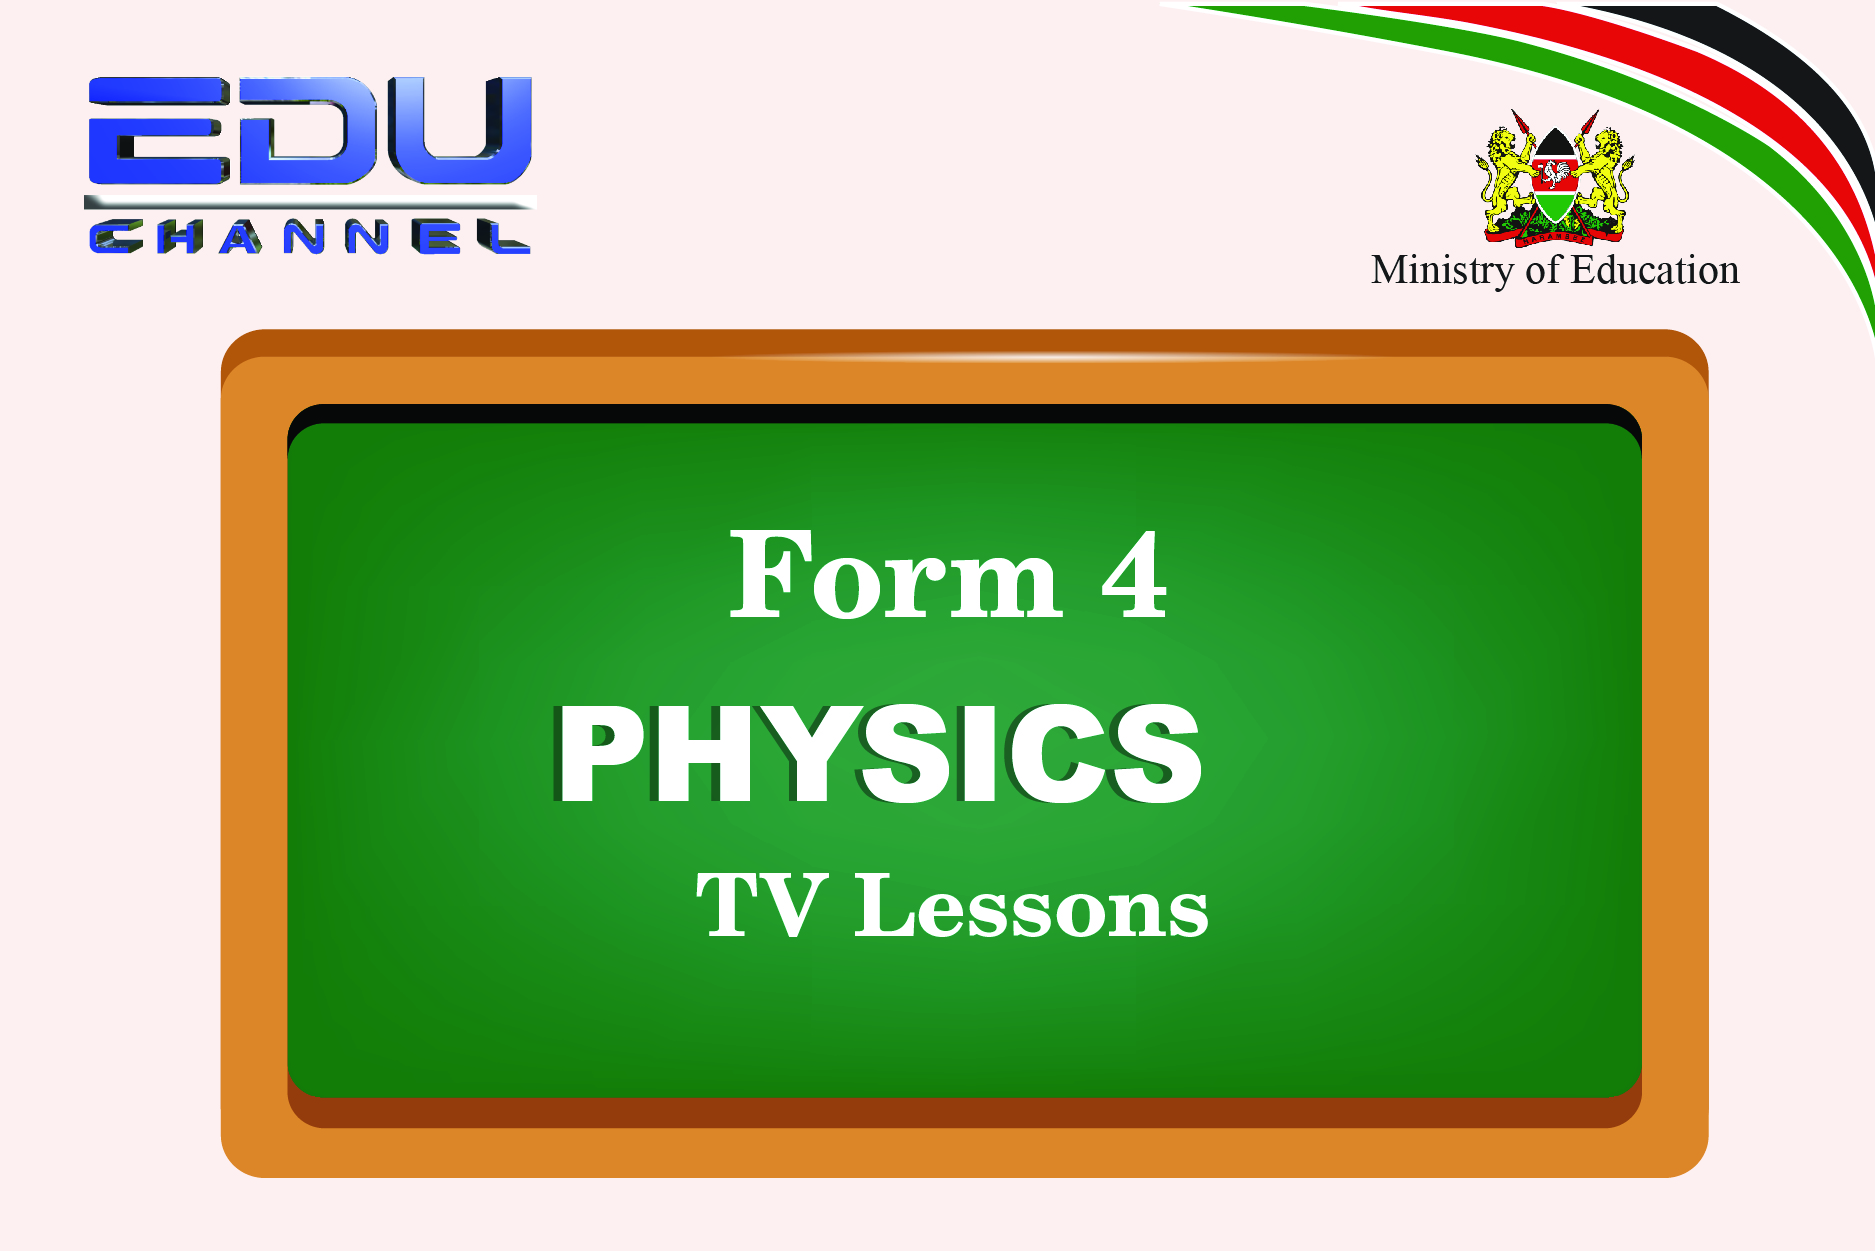 Form 4 Physics Lesson 1: Thin Lenses